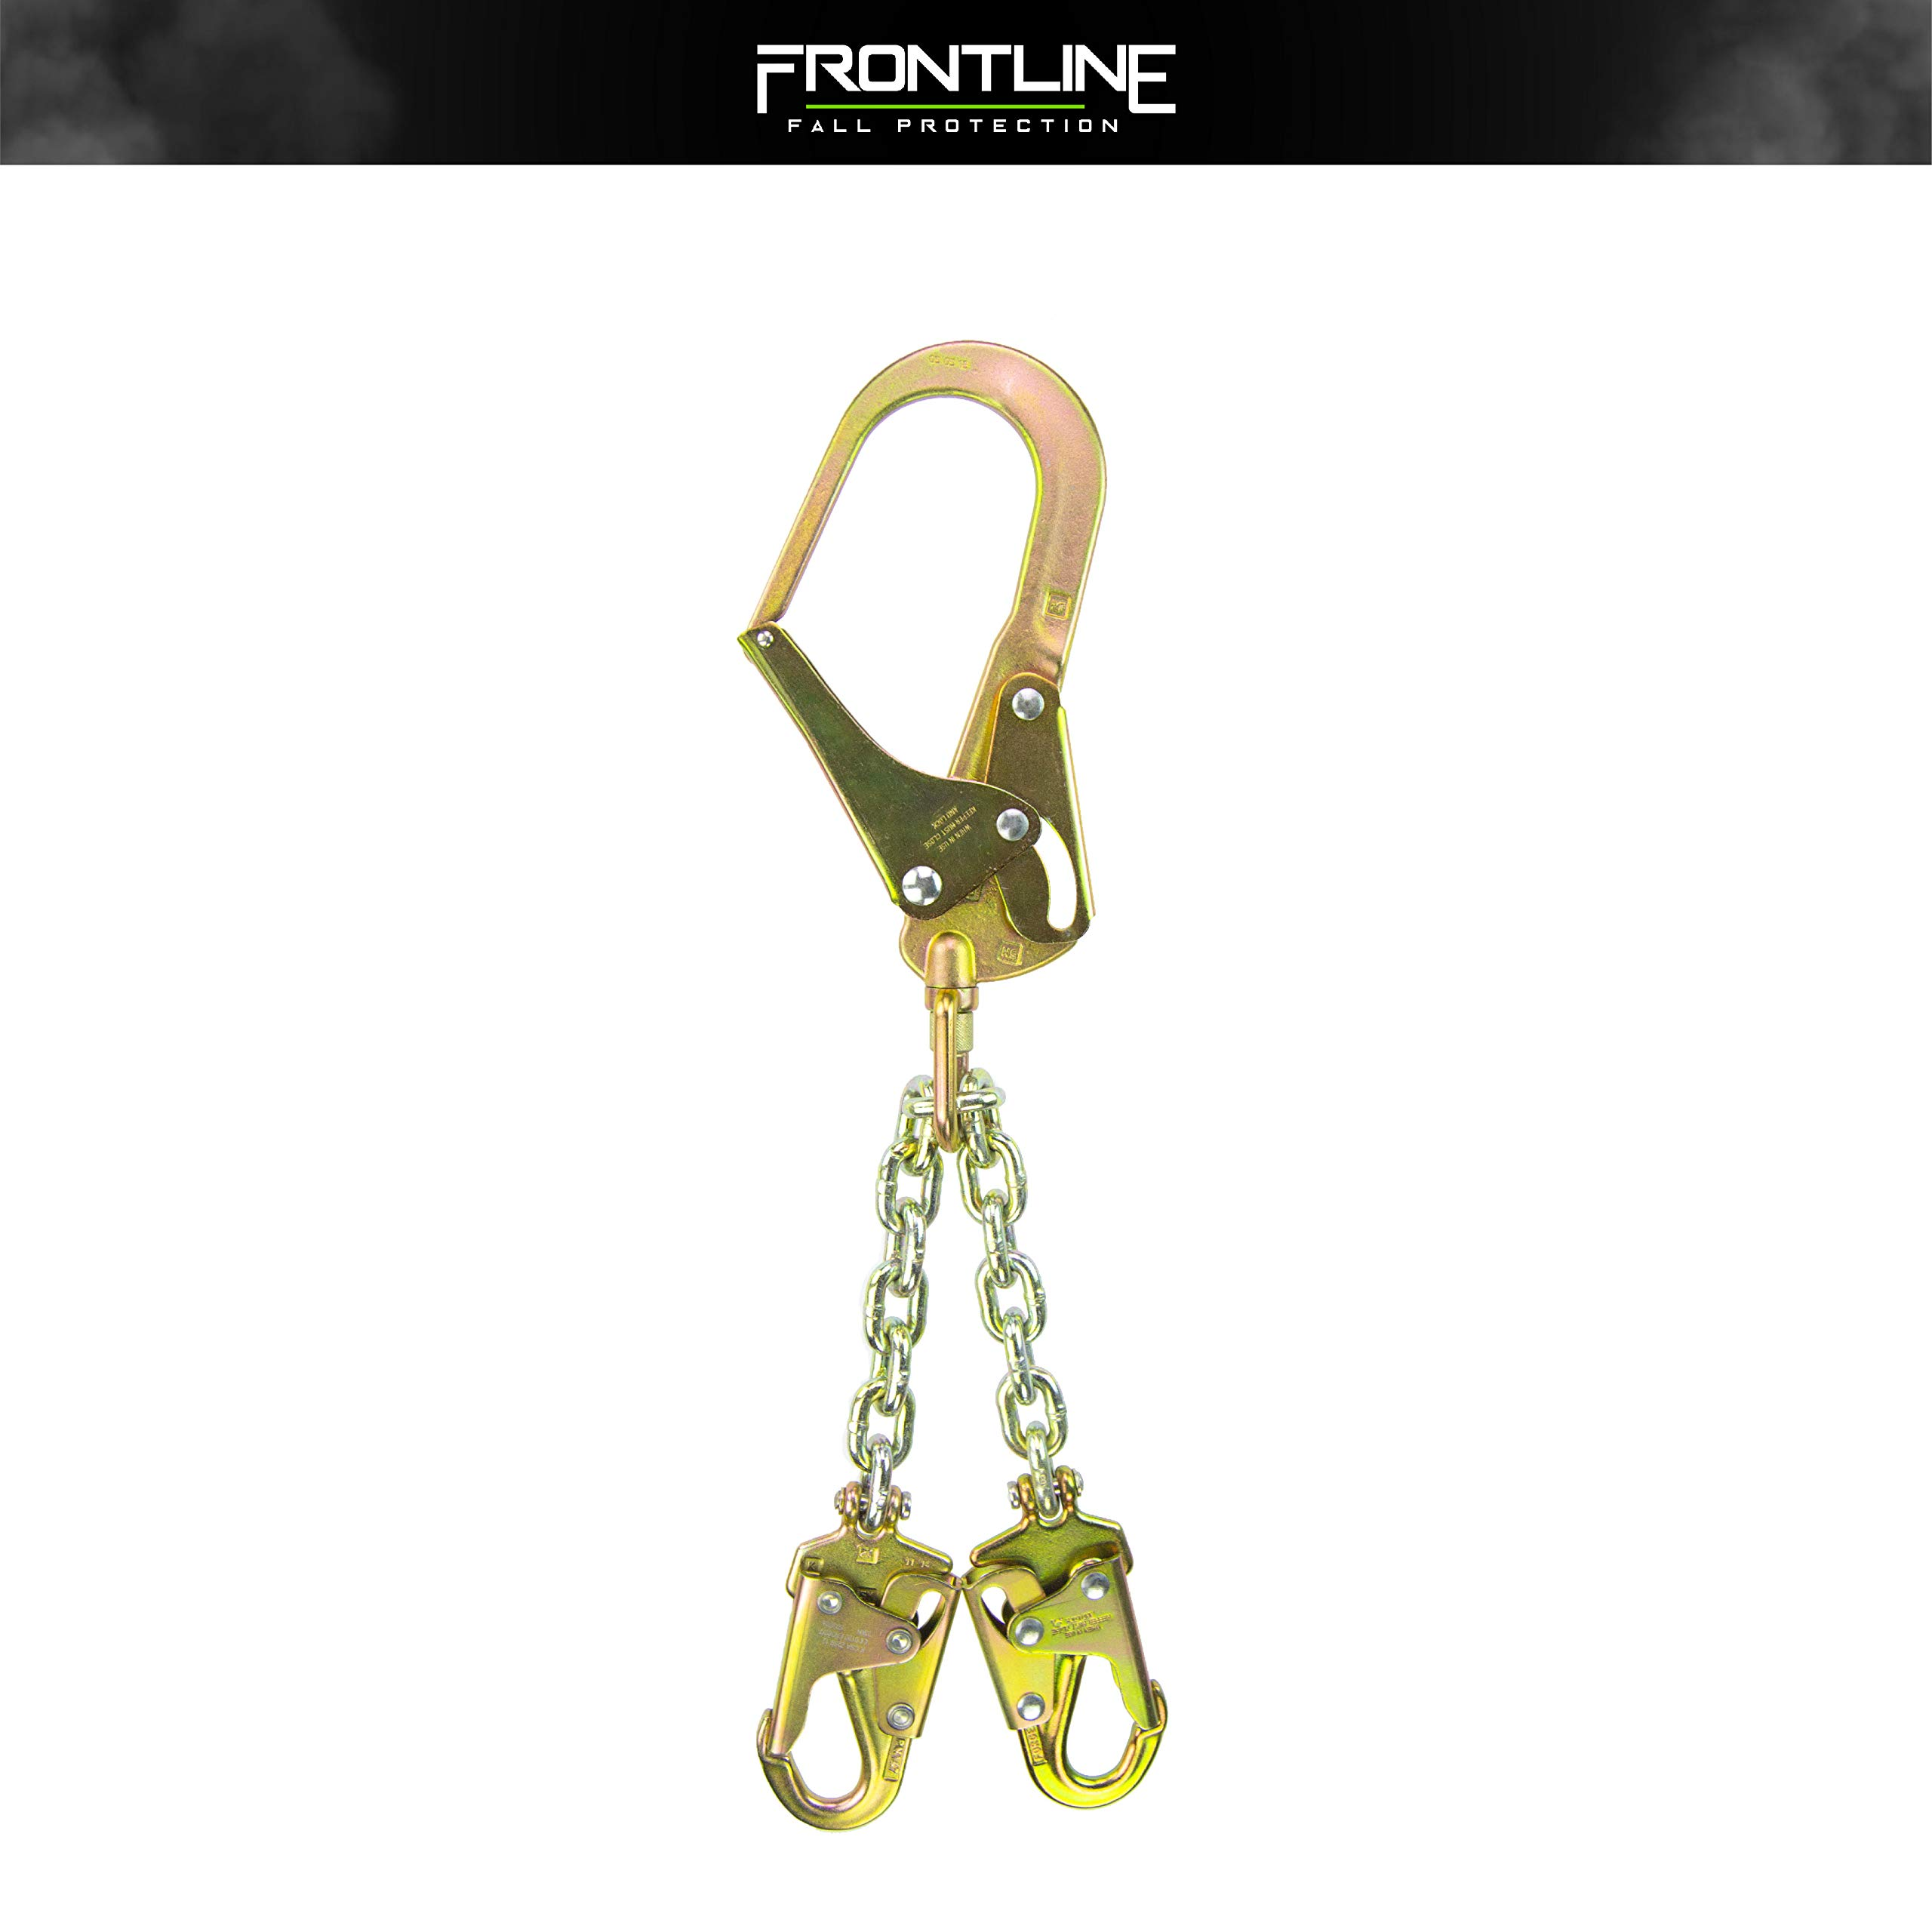 Frontline PSSW2R Rebar Positioning Chain Assembly with Swiveling Hook